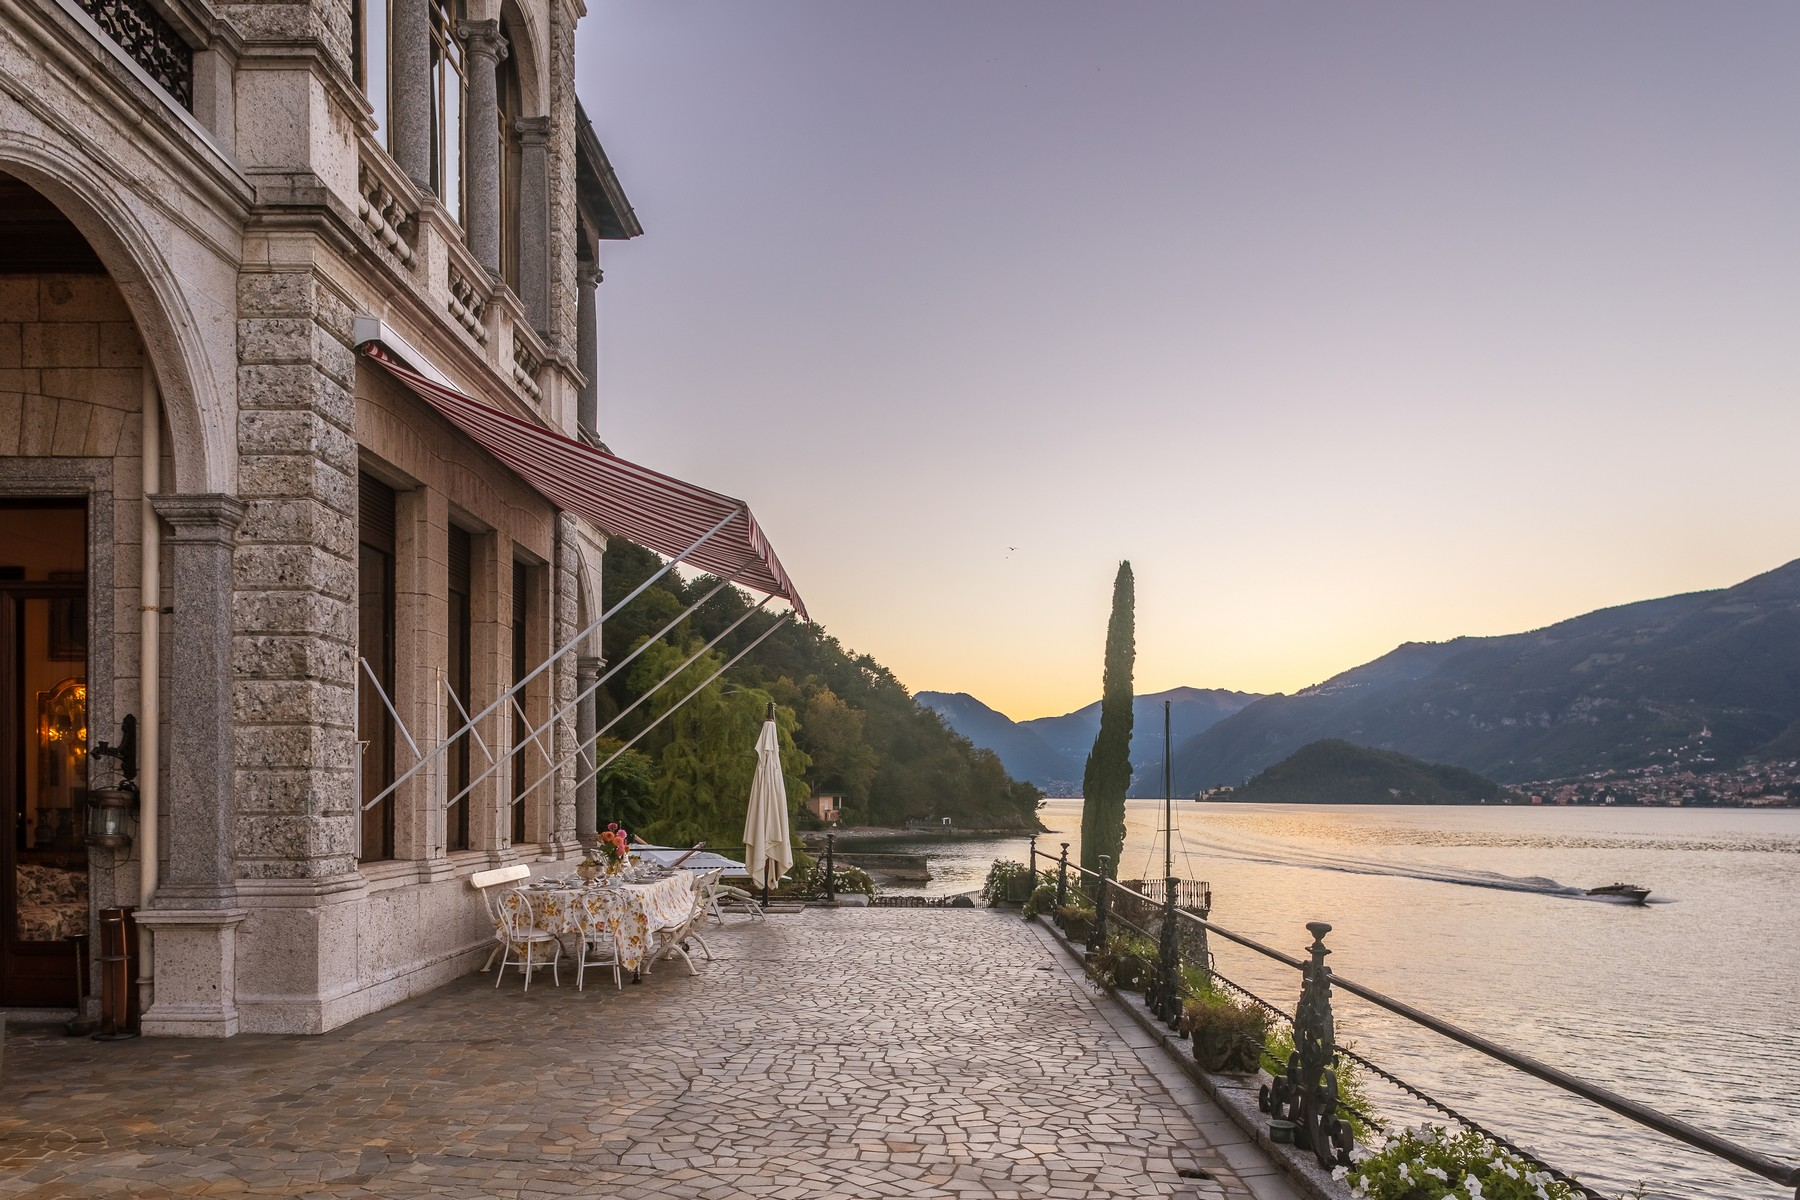 Additional photo for property listing at Magnificent villa Liberty pieds dans l'eau on Lake Como Via Beneficienza Bellagio, Como 22021 Italien